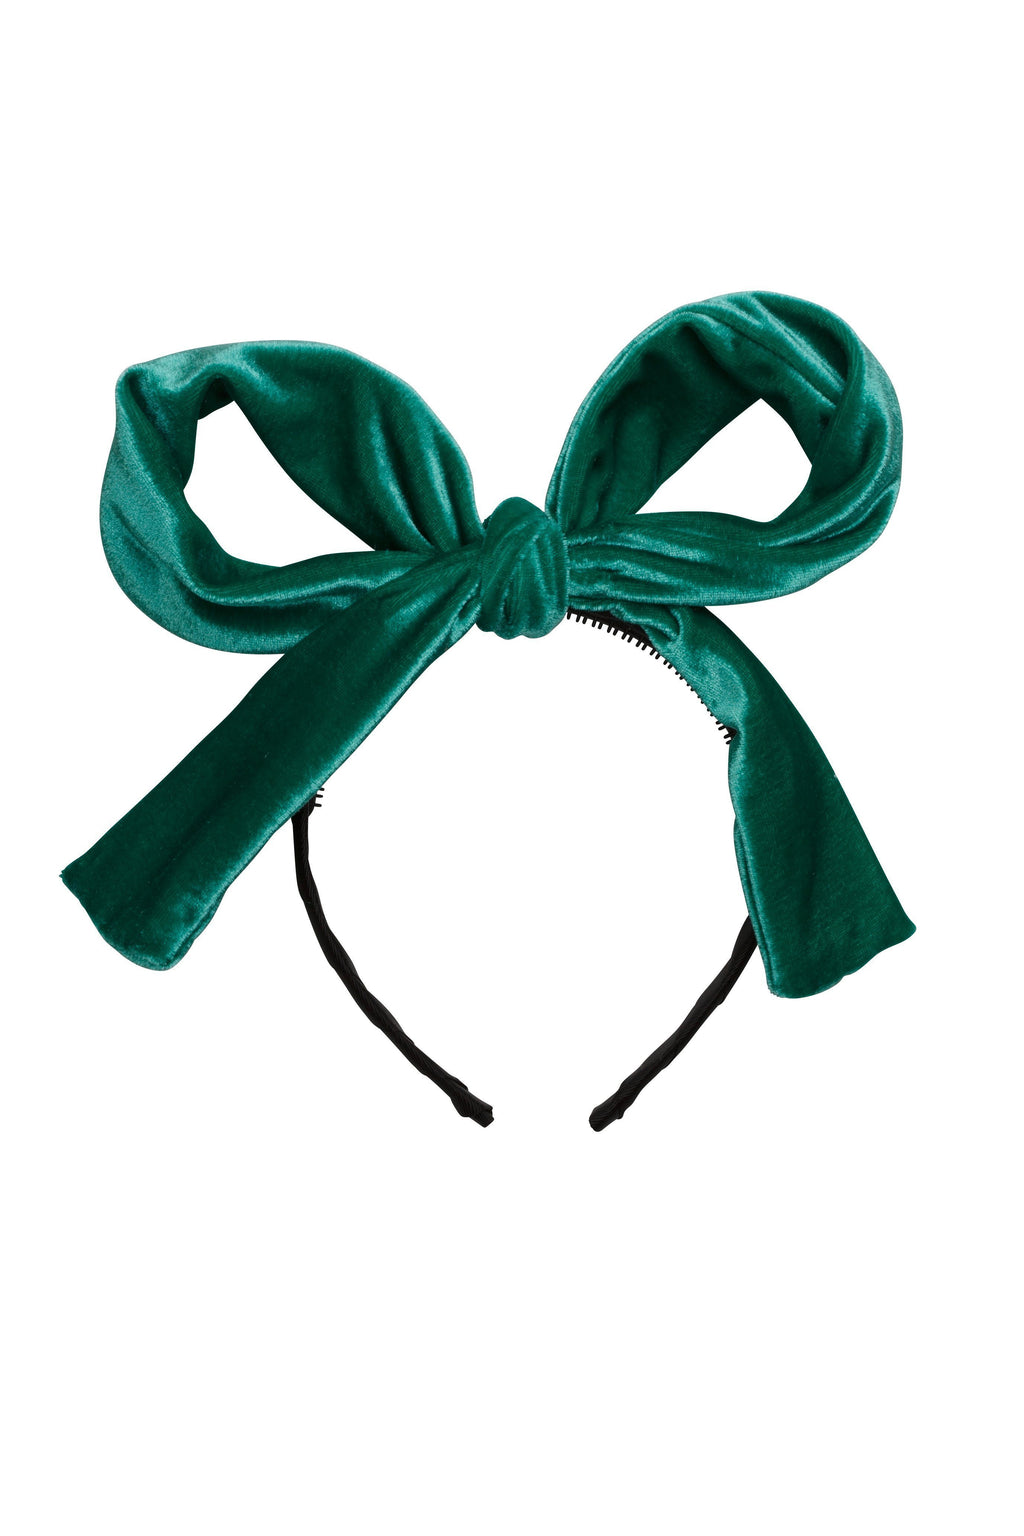 Party Bow - Jewel Tone Green Velvet - PROJECT 6, modest fashion